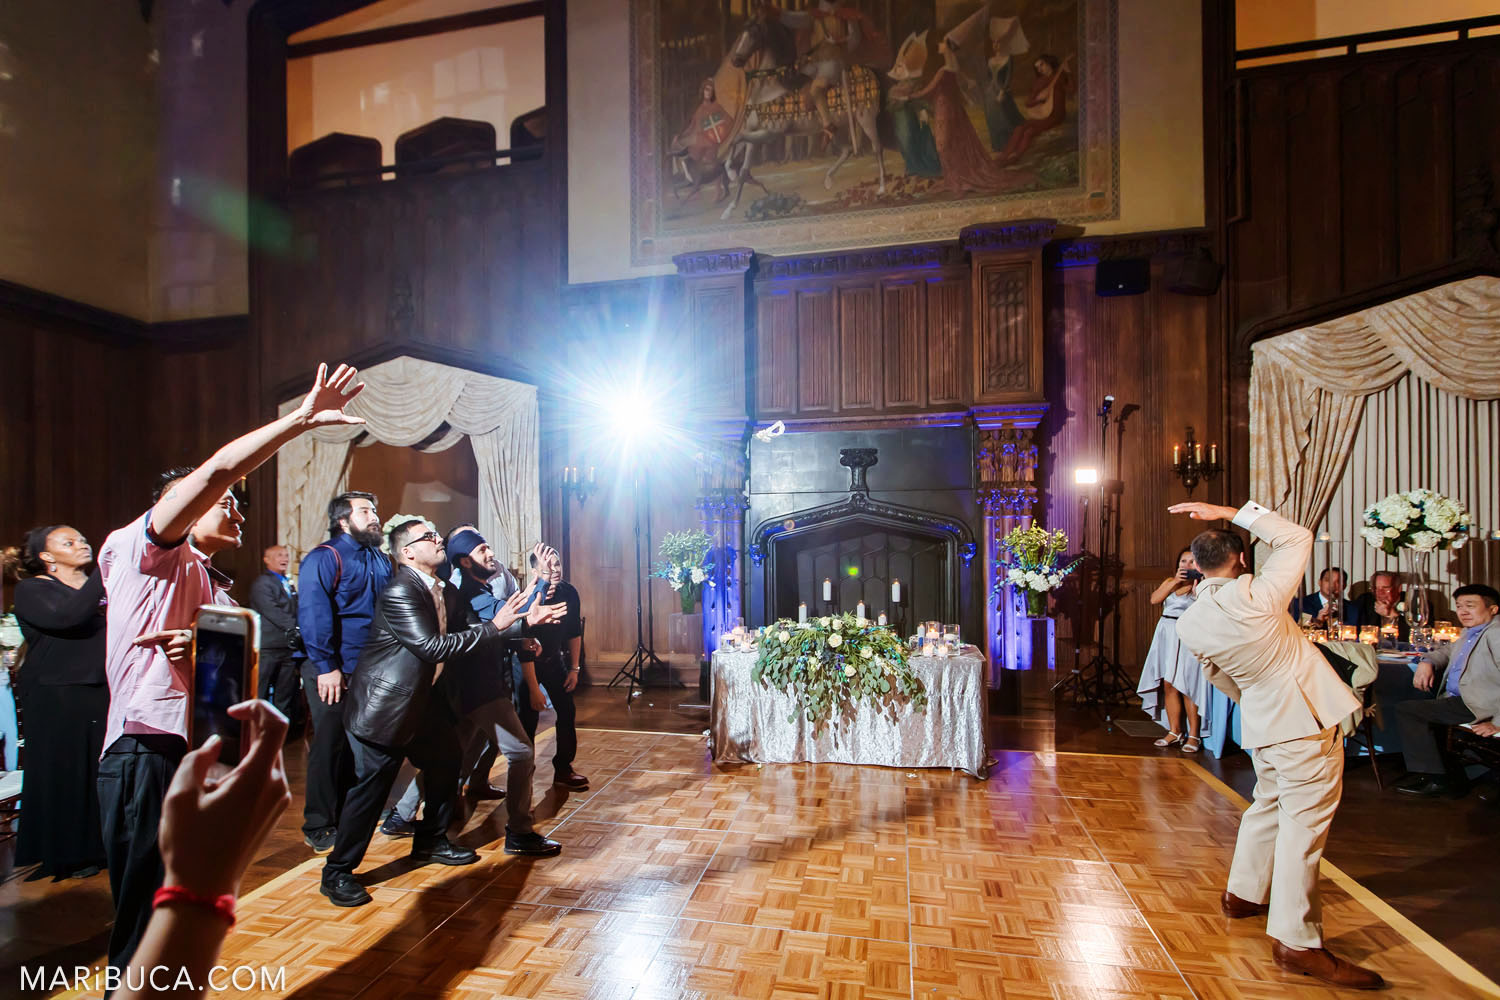 The groom tosses wedding bouquet to friends in the Great Hall, Kohl Mansion, Burlingame